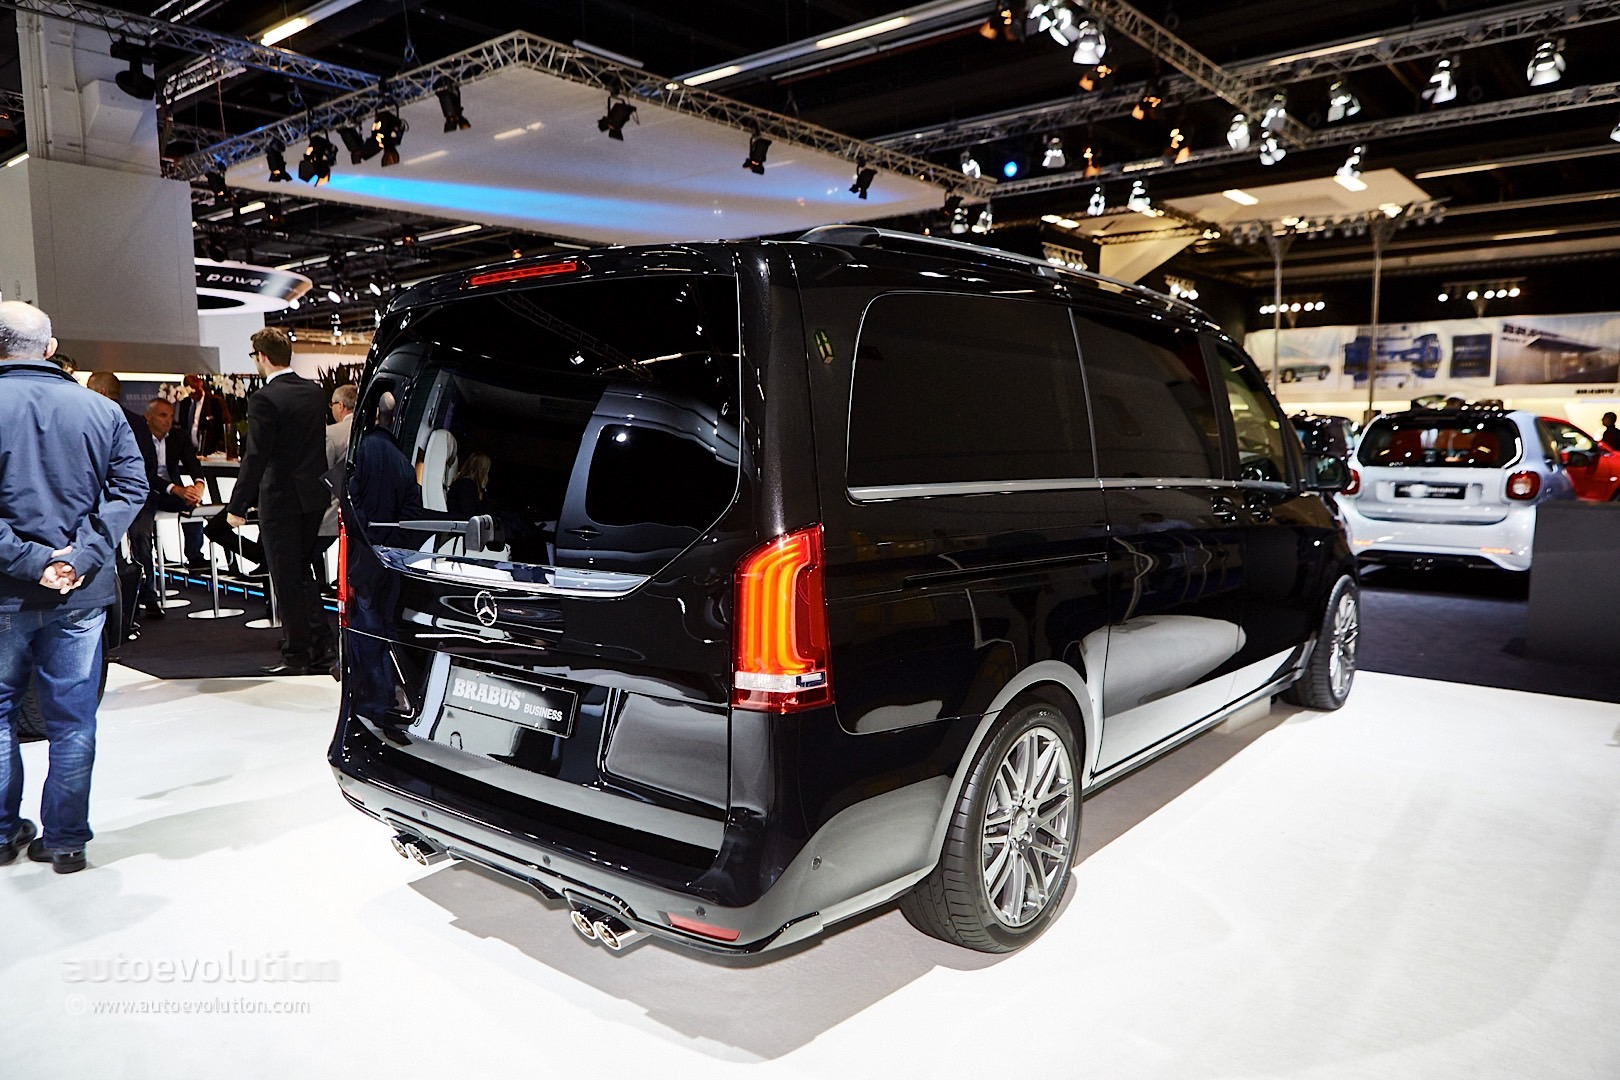 ' ' from the web at 'http://s1.cdn.autoevolution.com/images/news/brabus-sprinter-and-v-class-fill-the-luxury-van-gap-in-frankfurt-live-photos-100011_1.jpg'